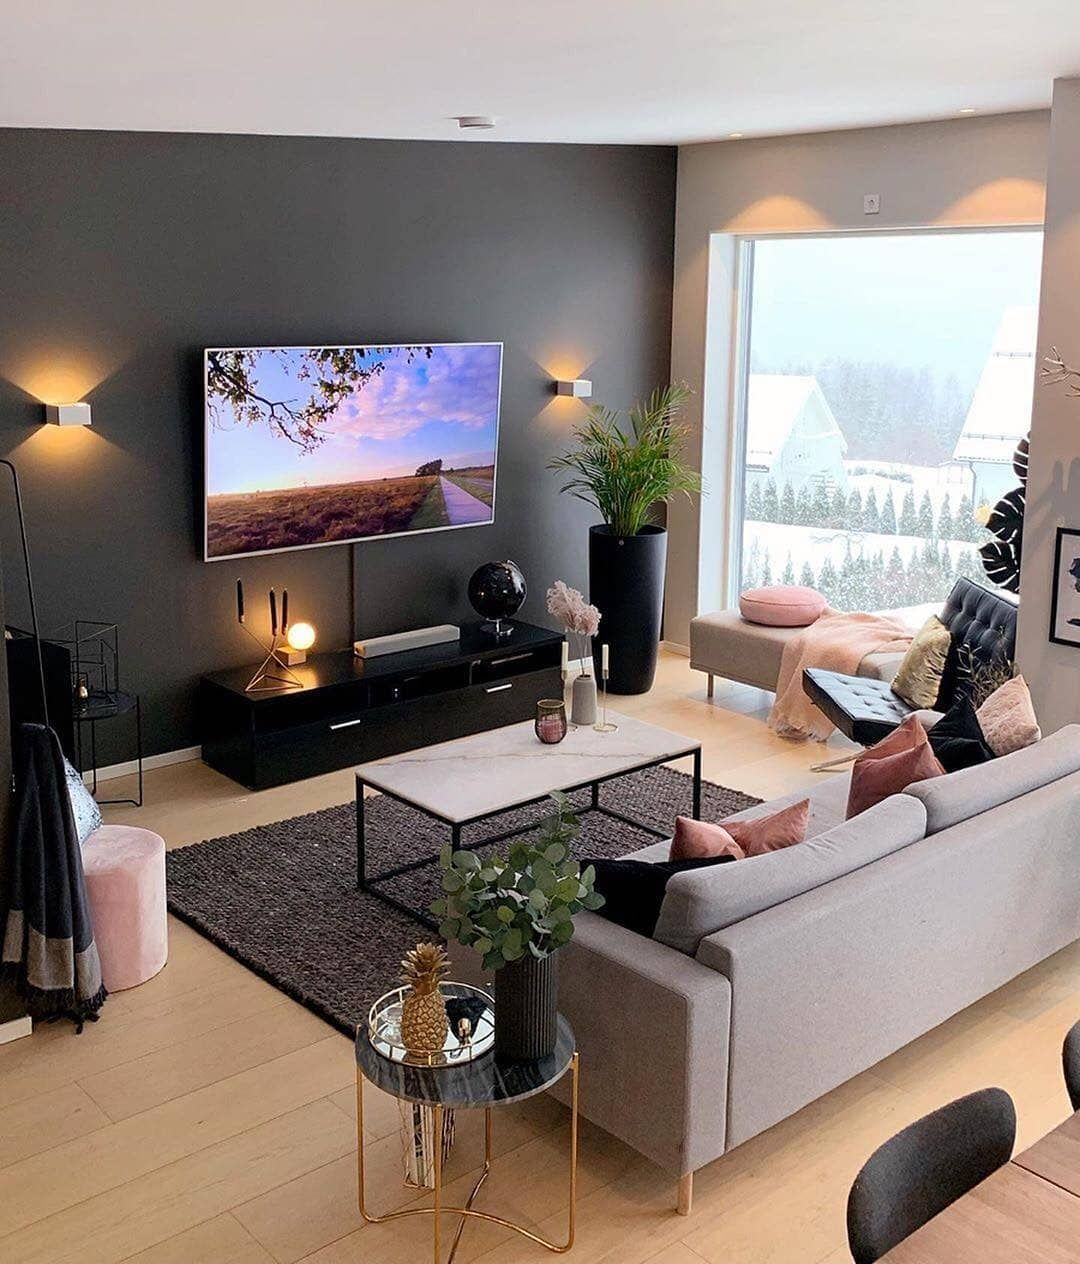 13 Best Modern Living Room Inspirations images